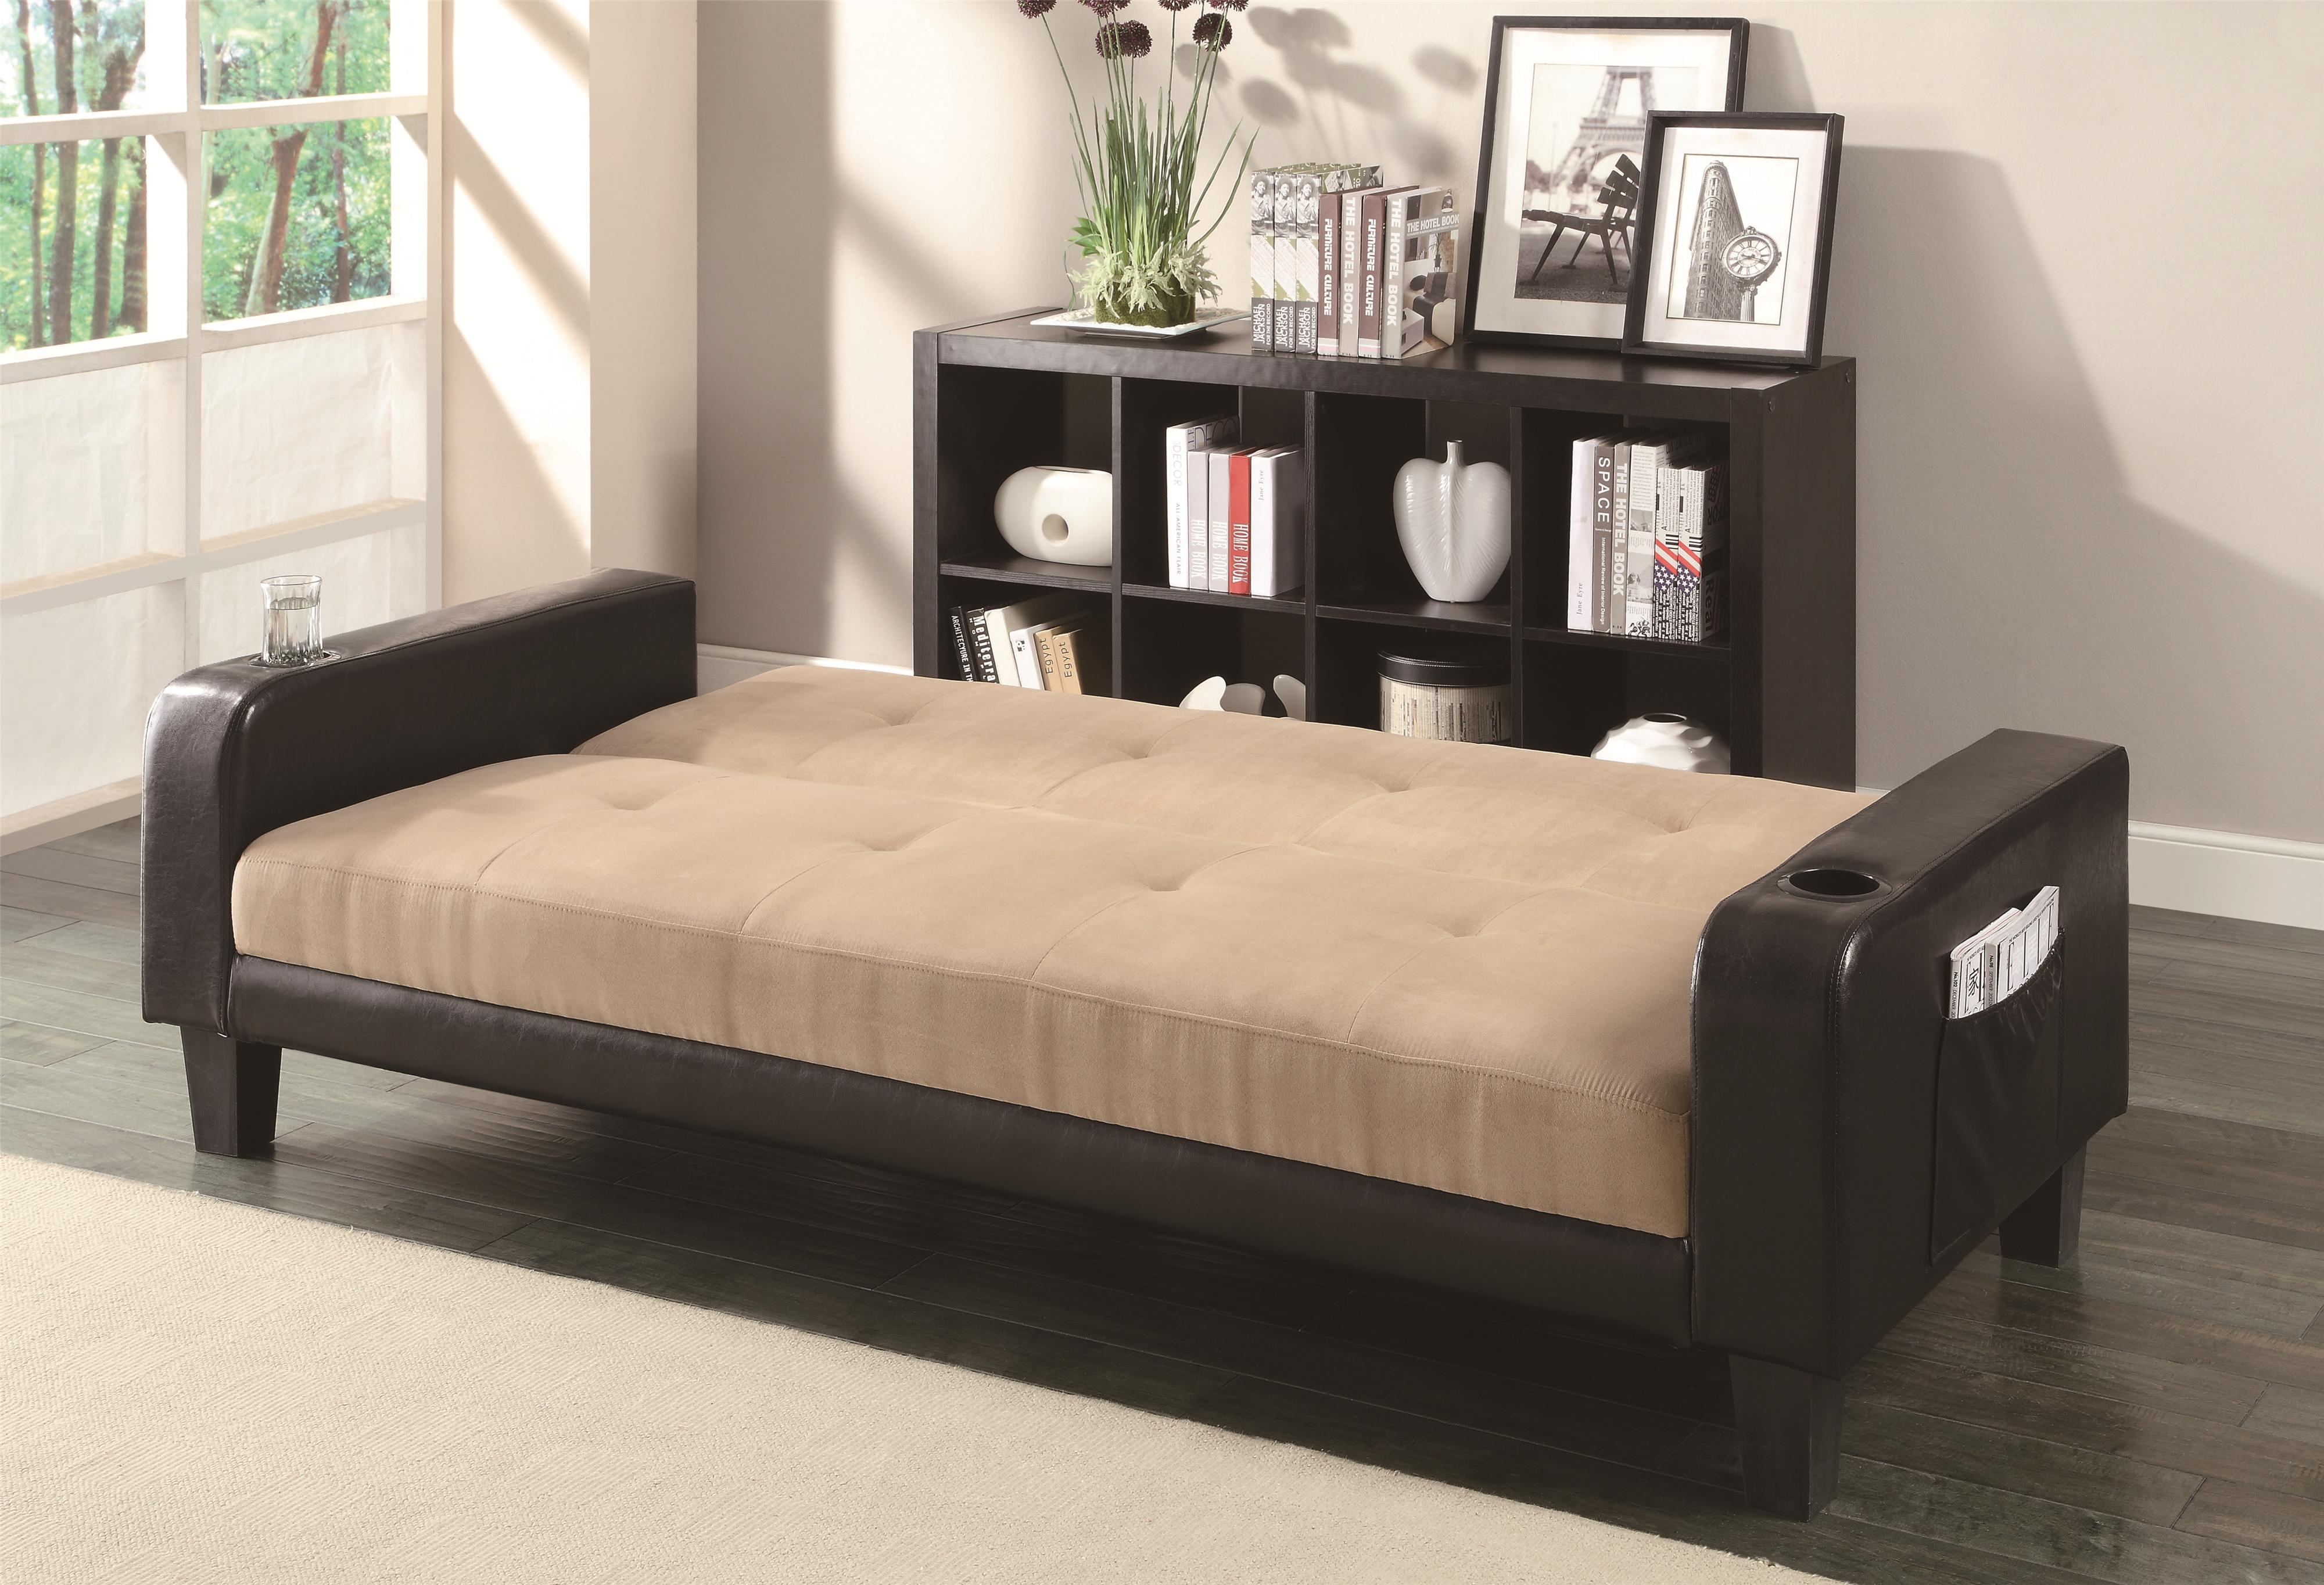 overstock michael home amimi today area futon snow nourison chic shipping amini garden x by free rug product city